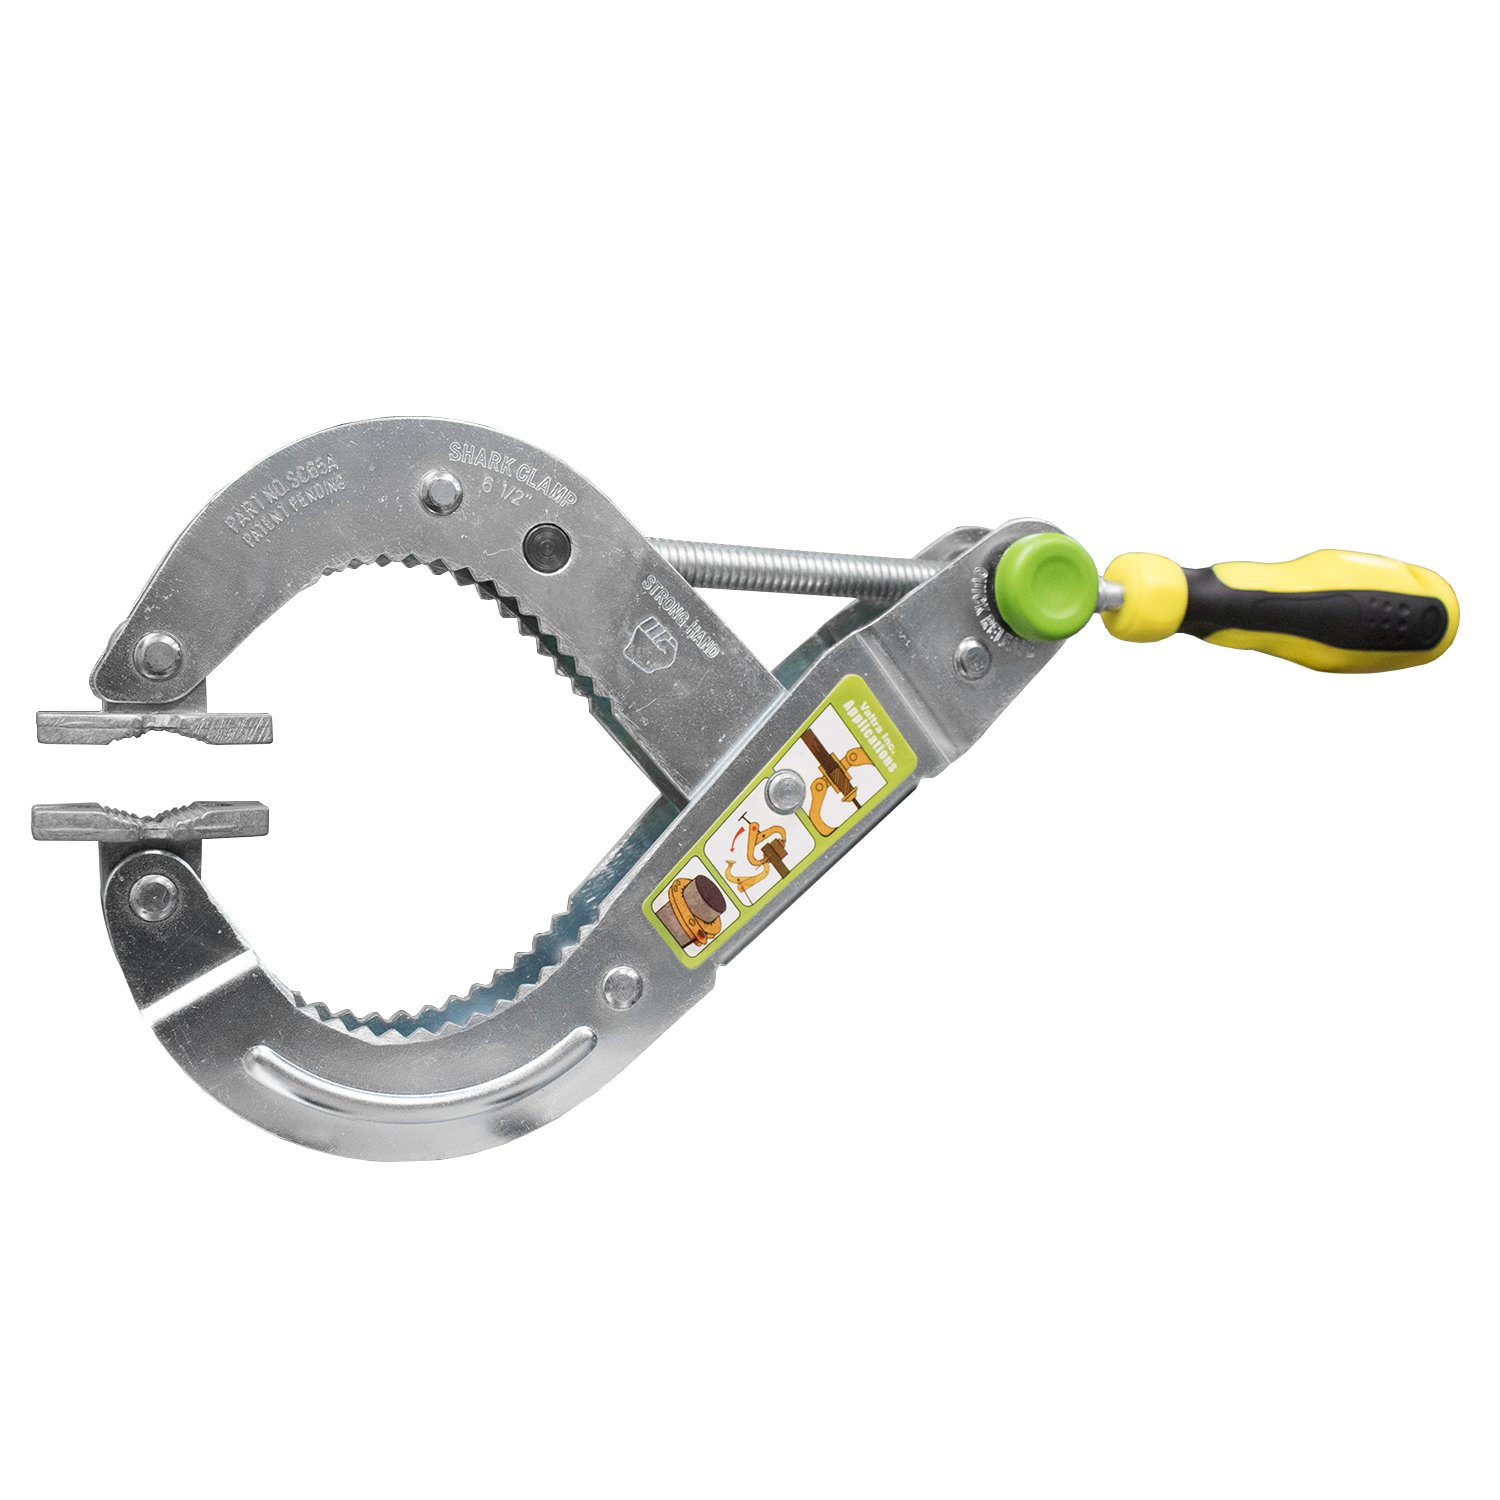 Strong hand Tools SC65A Shark Clamp with Straight Handle No Twist Clamp and 300-Pound Pressure with 6.5-Inch Opening